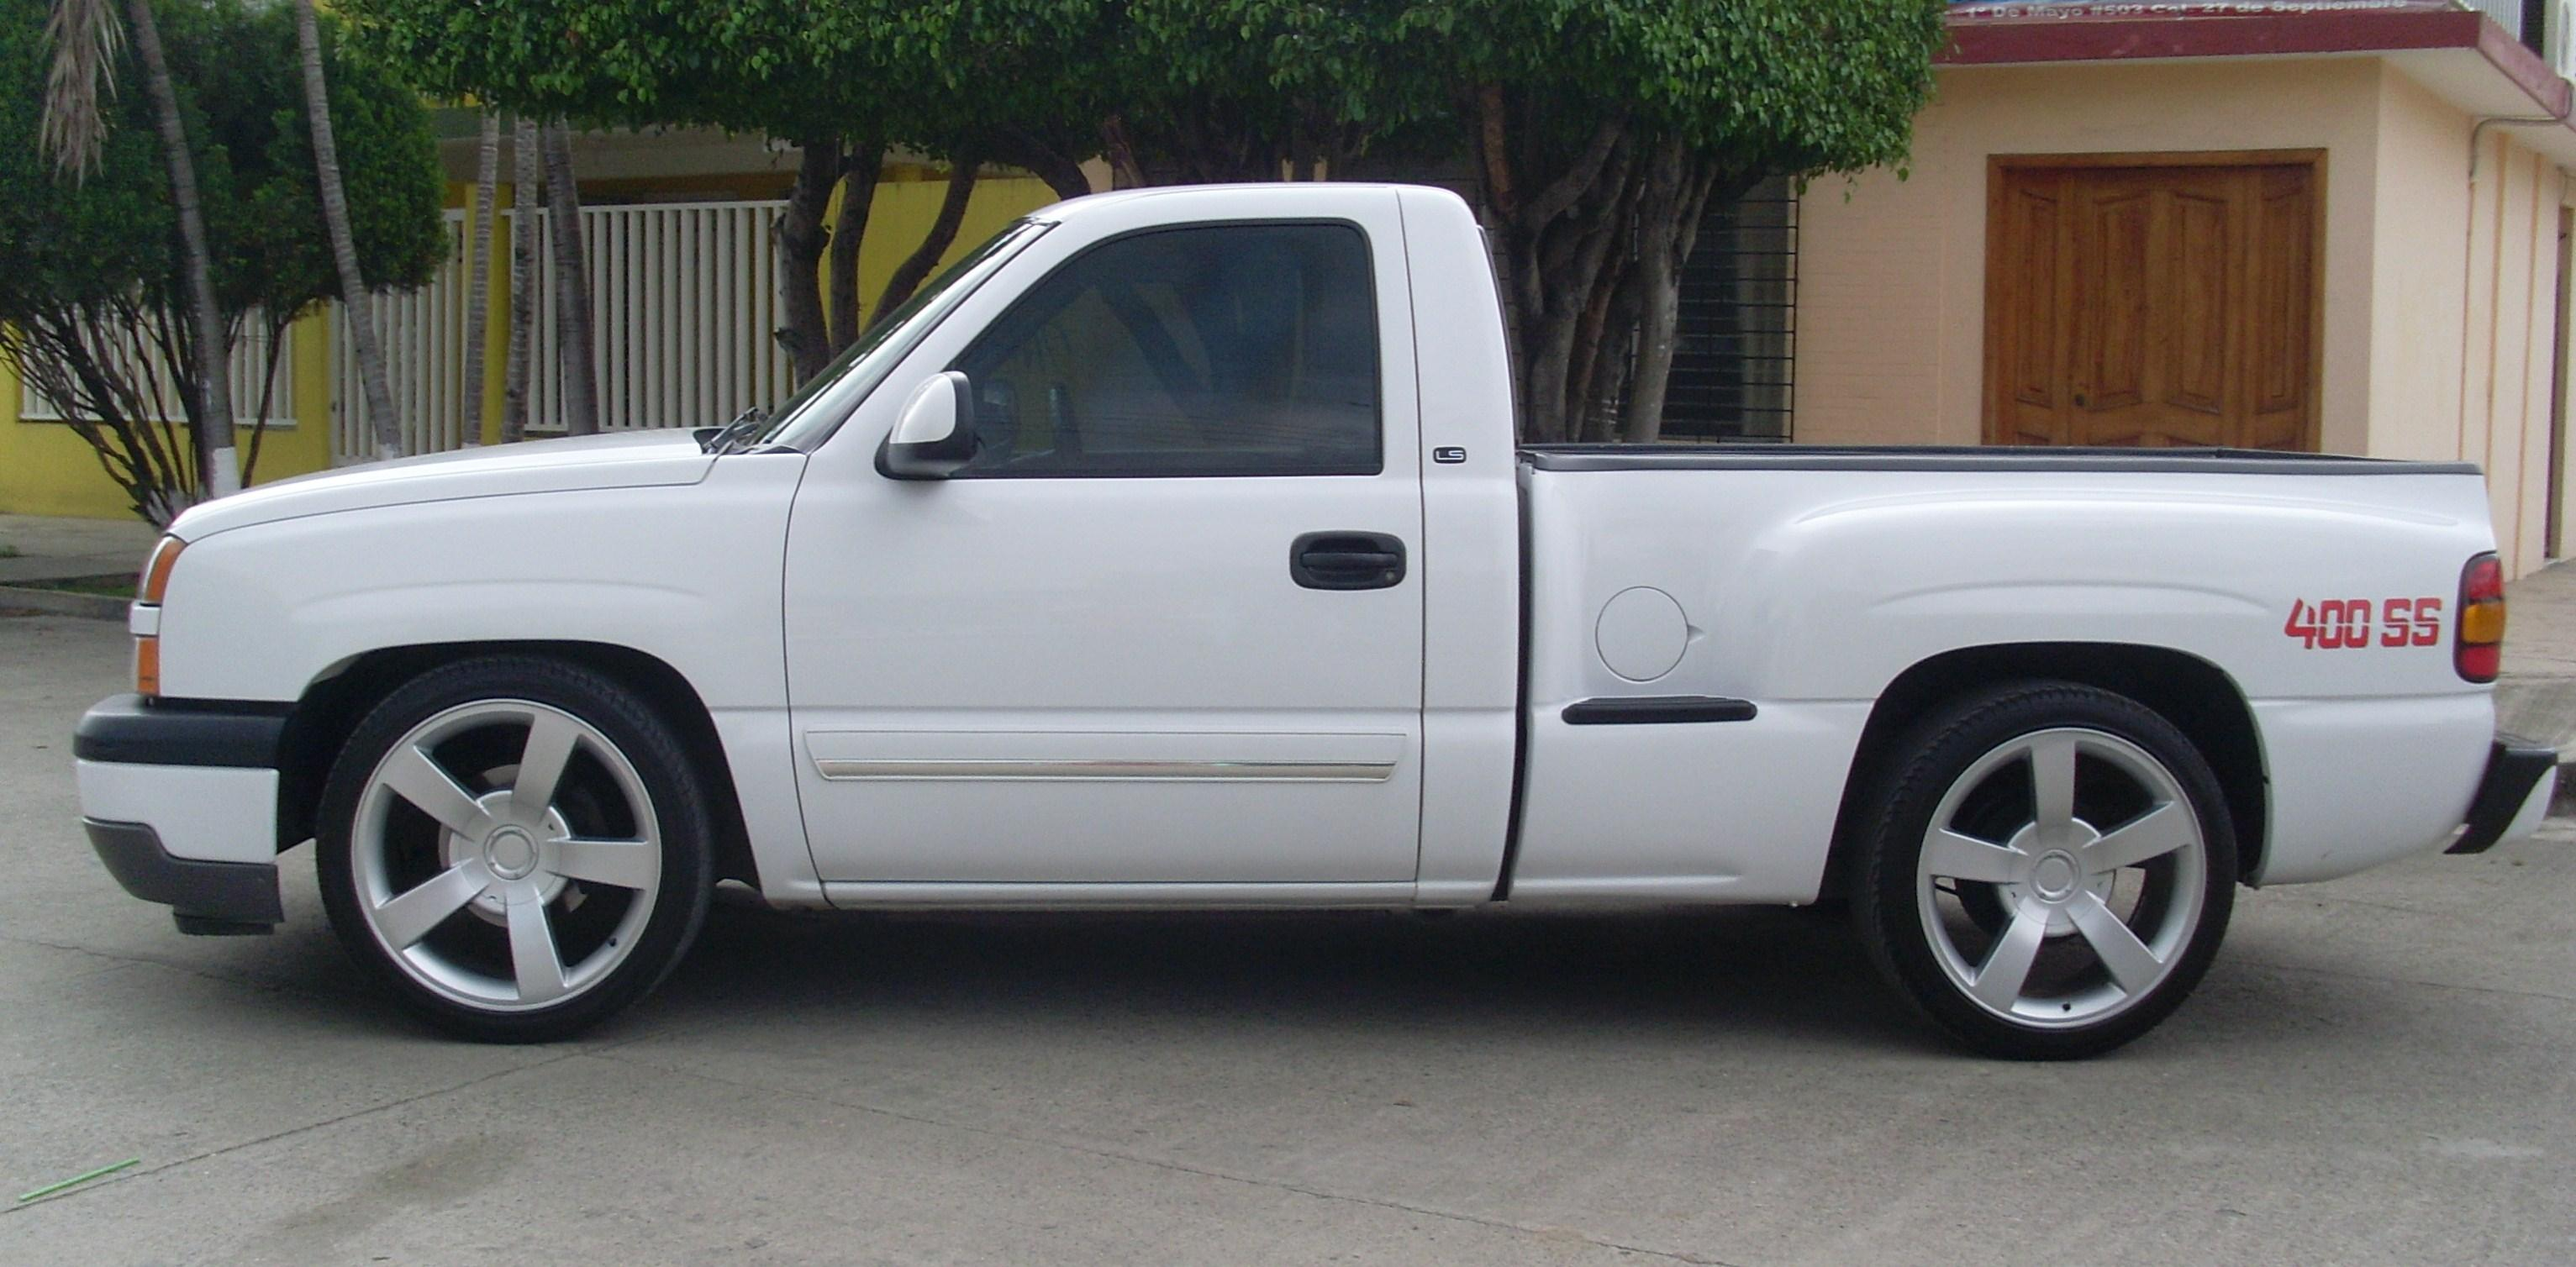 400ssgarces 2005 Chevrolet Silverado 1500 Regular Cab 14427432